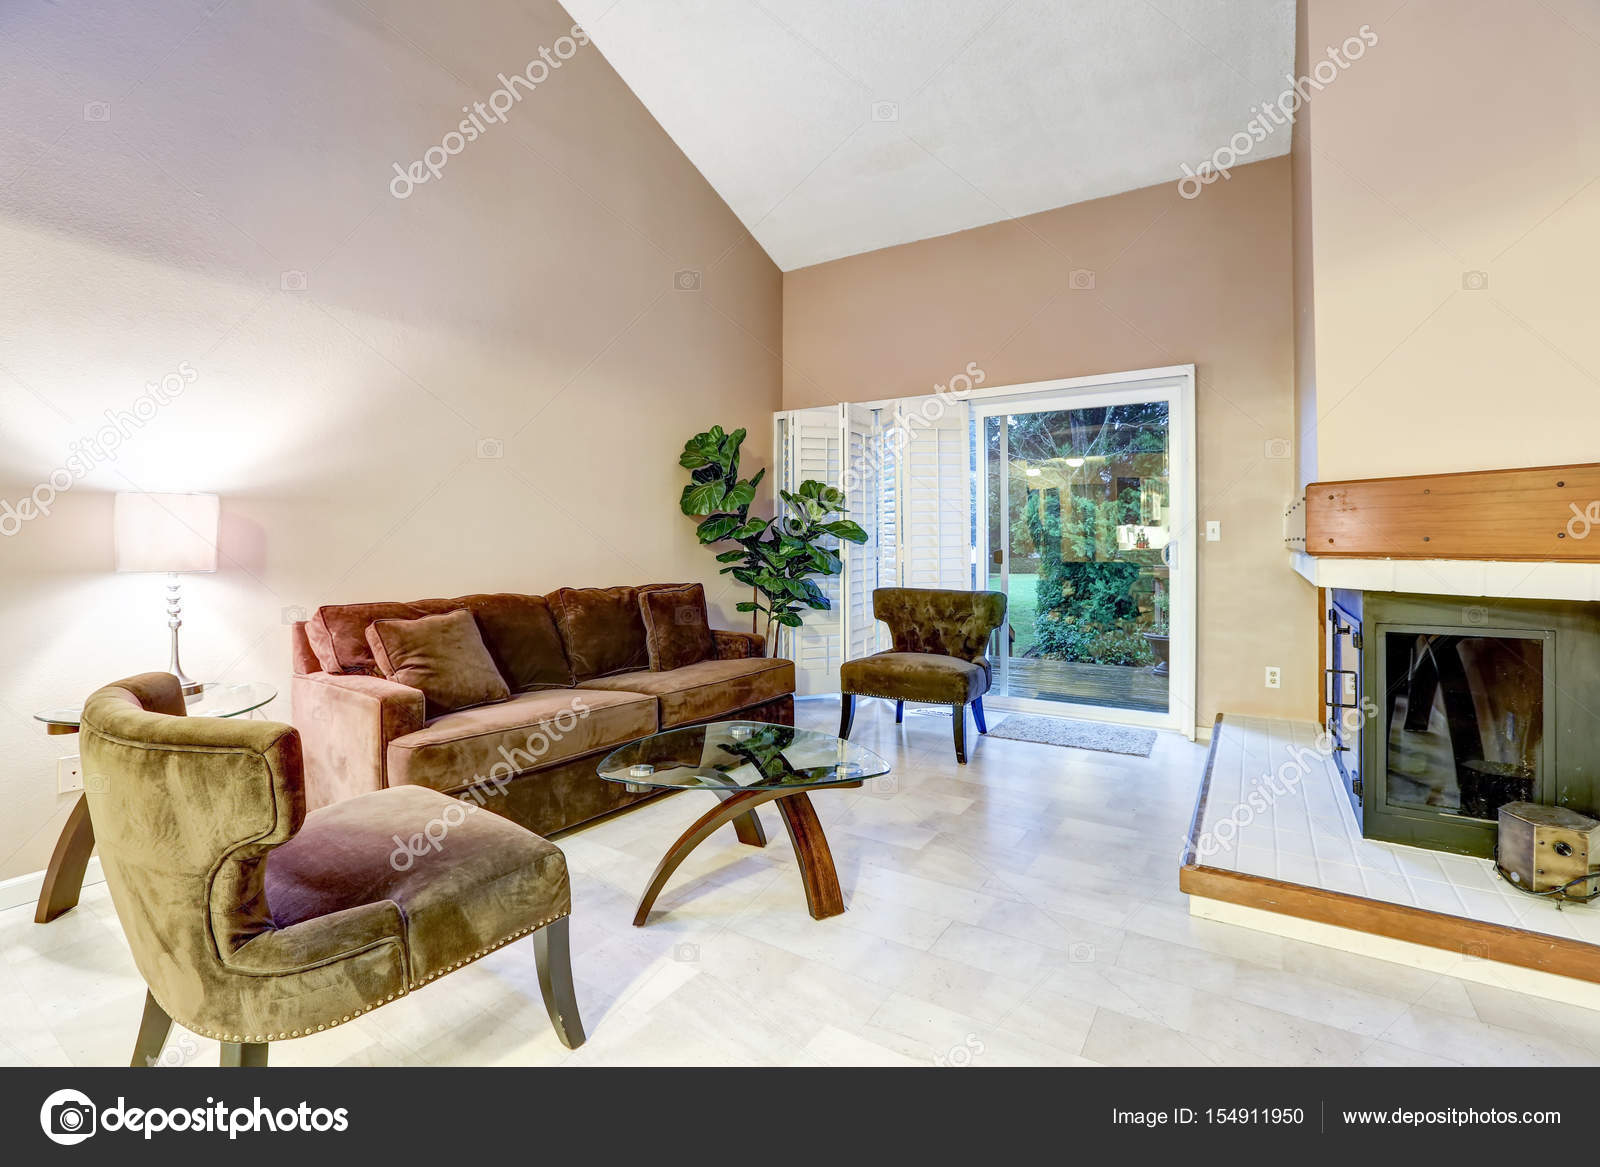 Family Room In Brown Tones With High Vaulted Ceiling Over Comfortable Velvet Sofa Two Tufted Chairs And Glass Coffee Table Facing Corner Fireplace